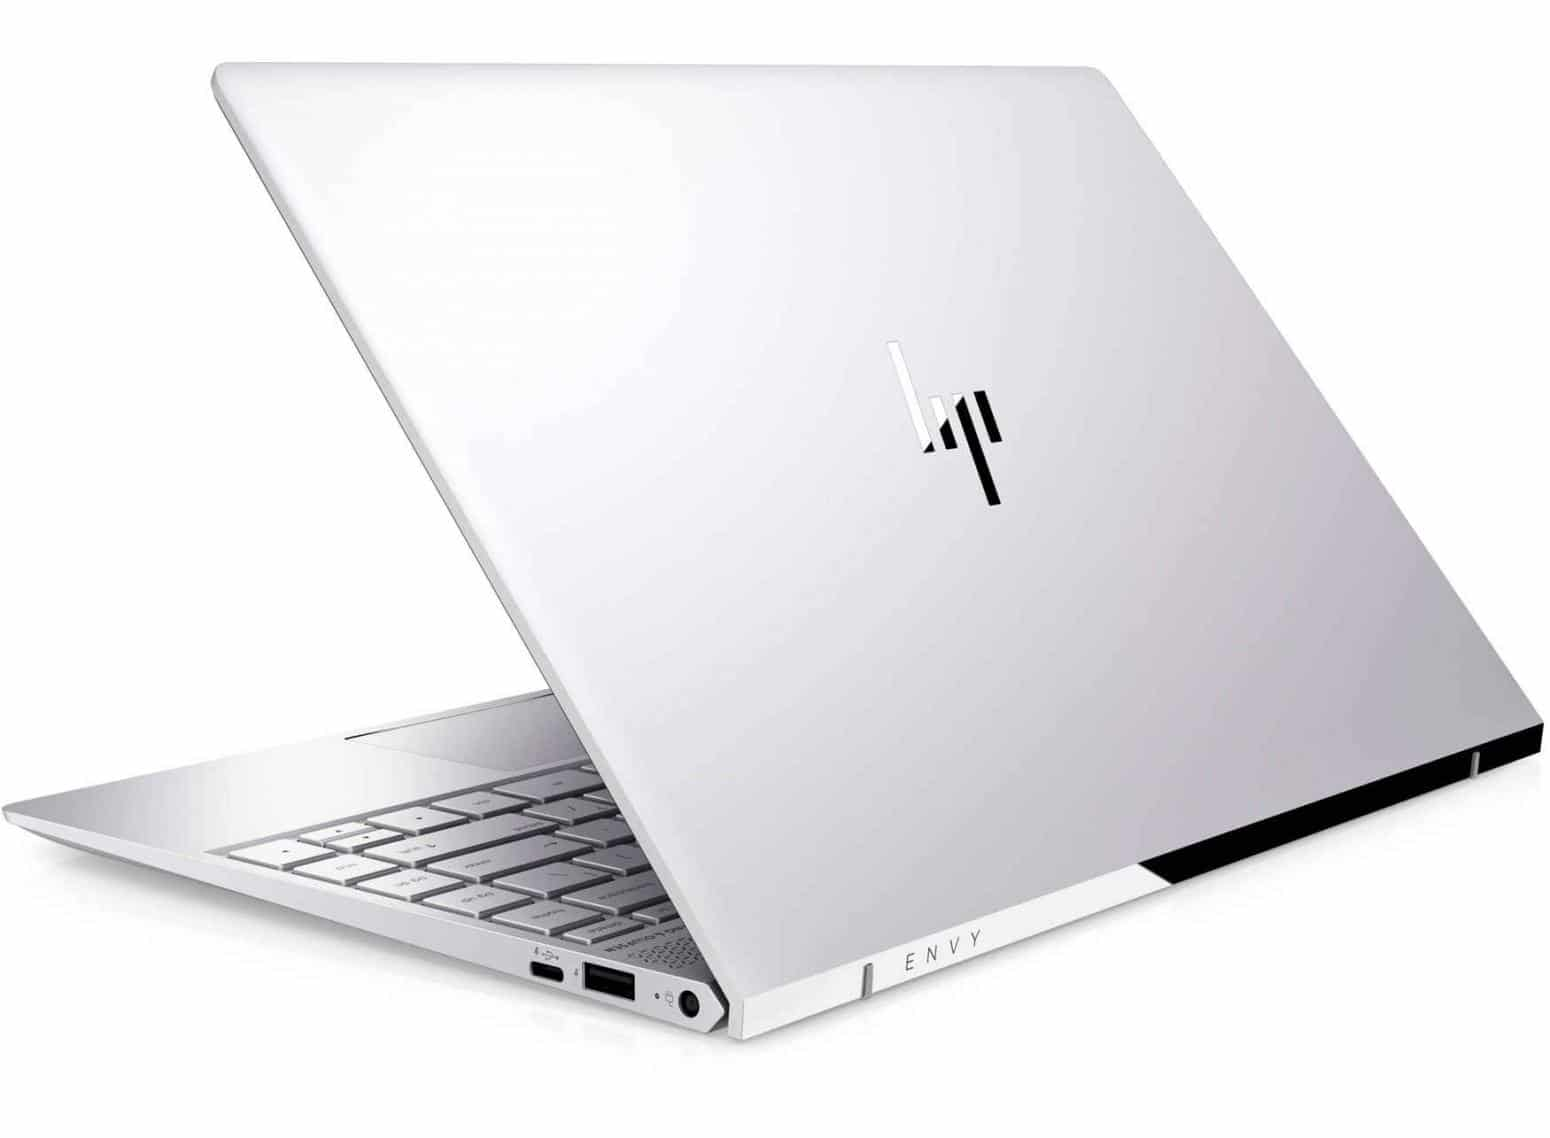 HP Envy 13-ad012nf, ultrabook 13 pouces SSD 1 To Full IPS i7 Kaby promo 1299€